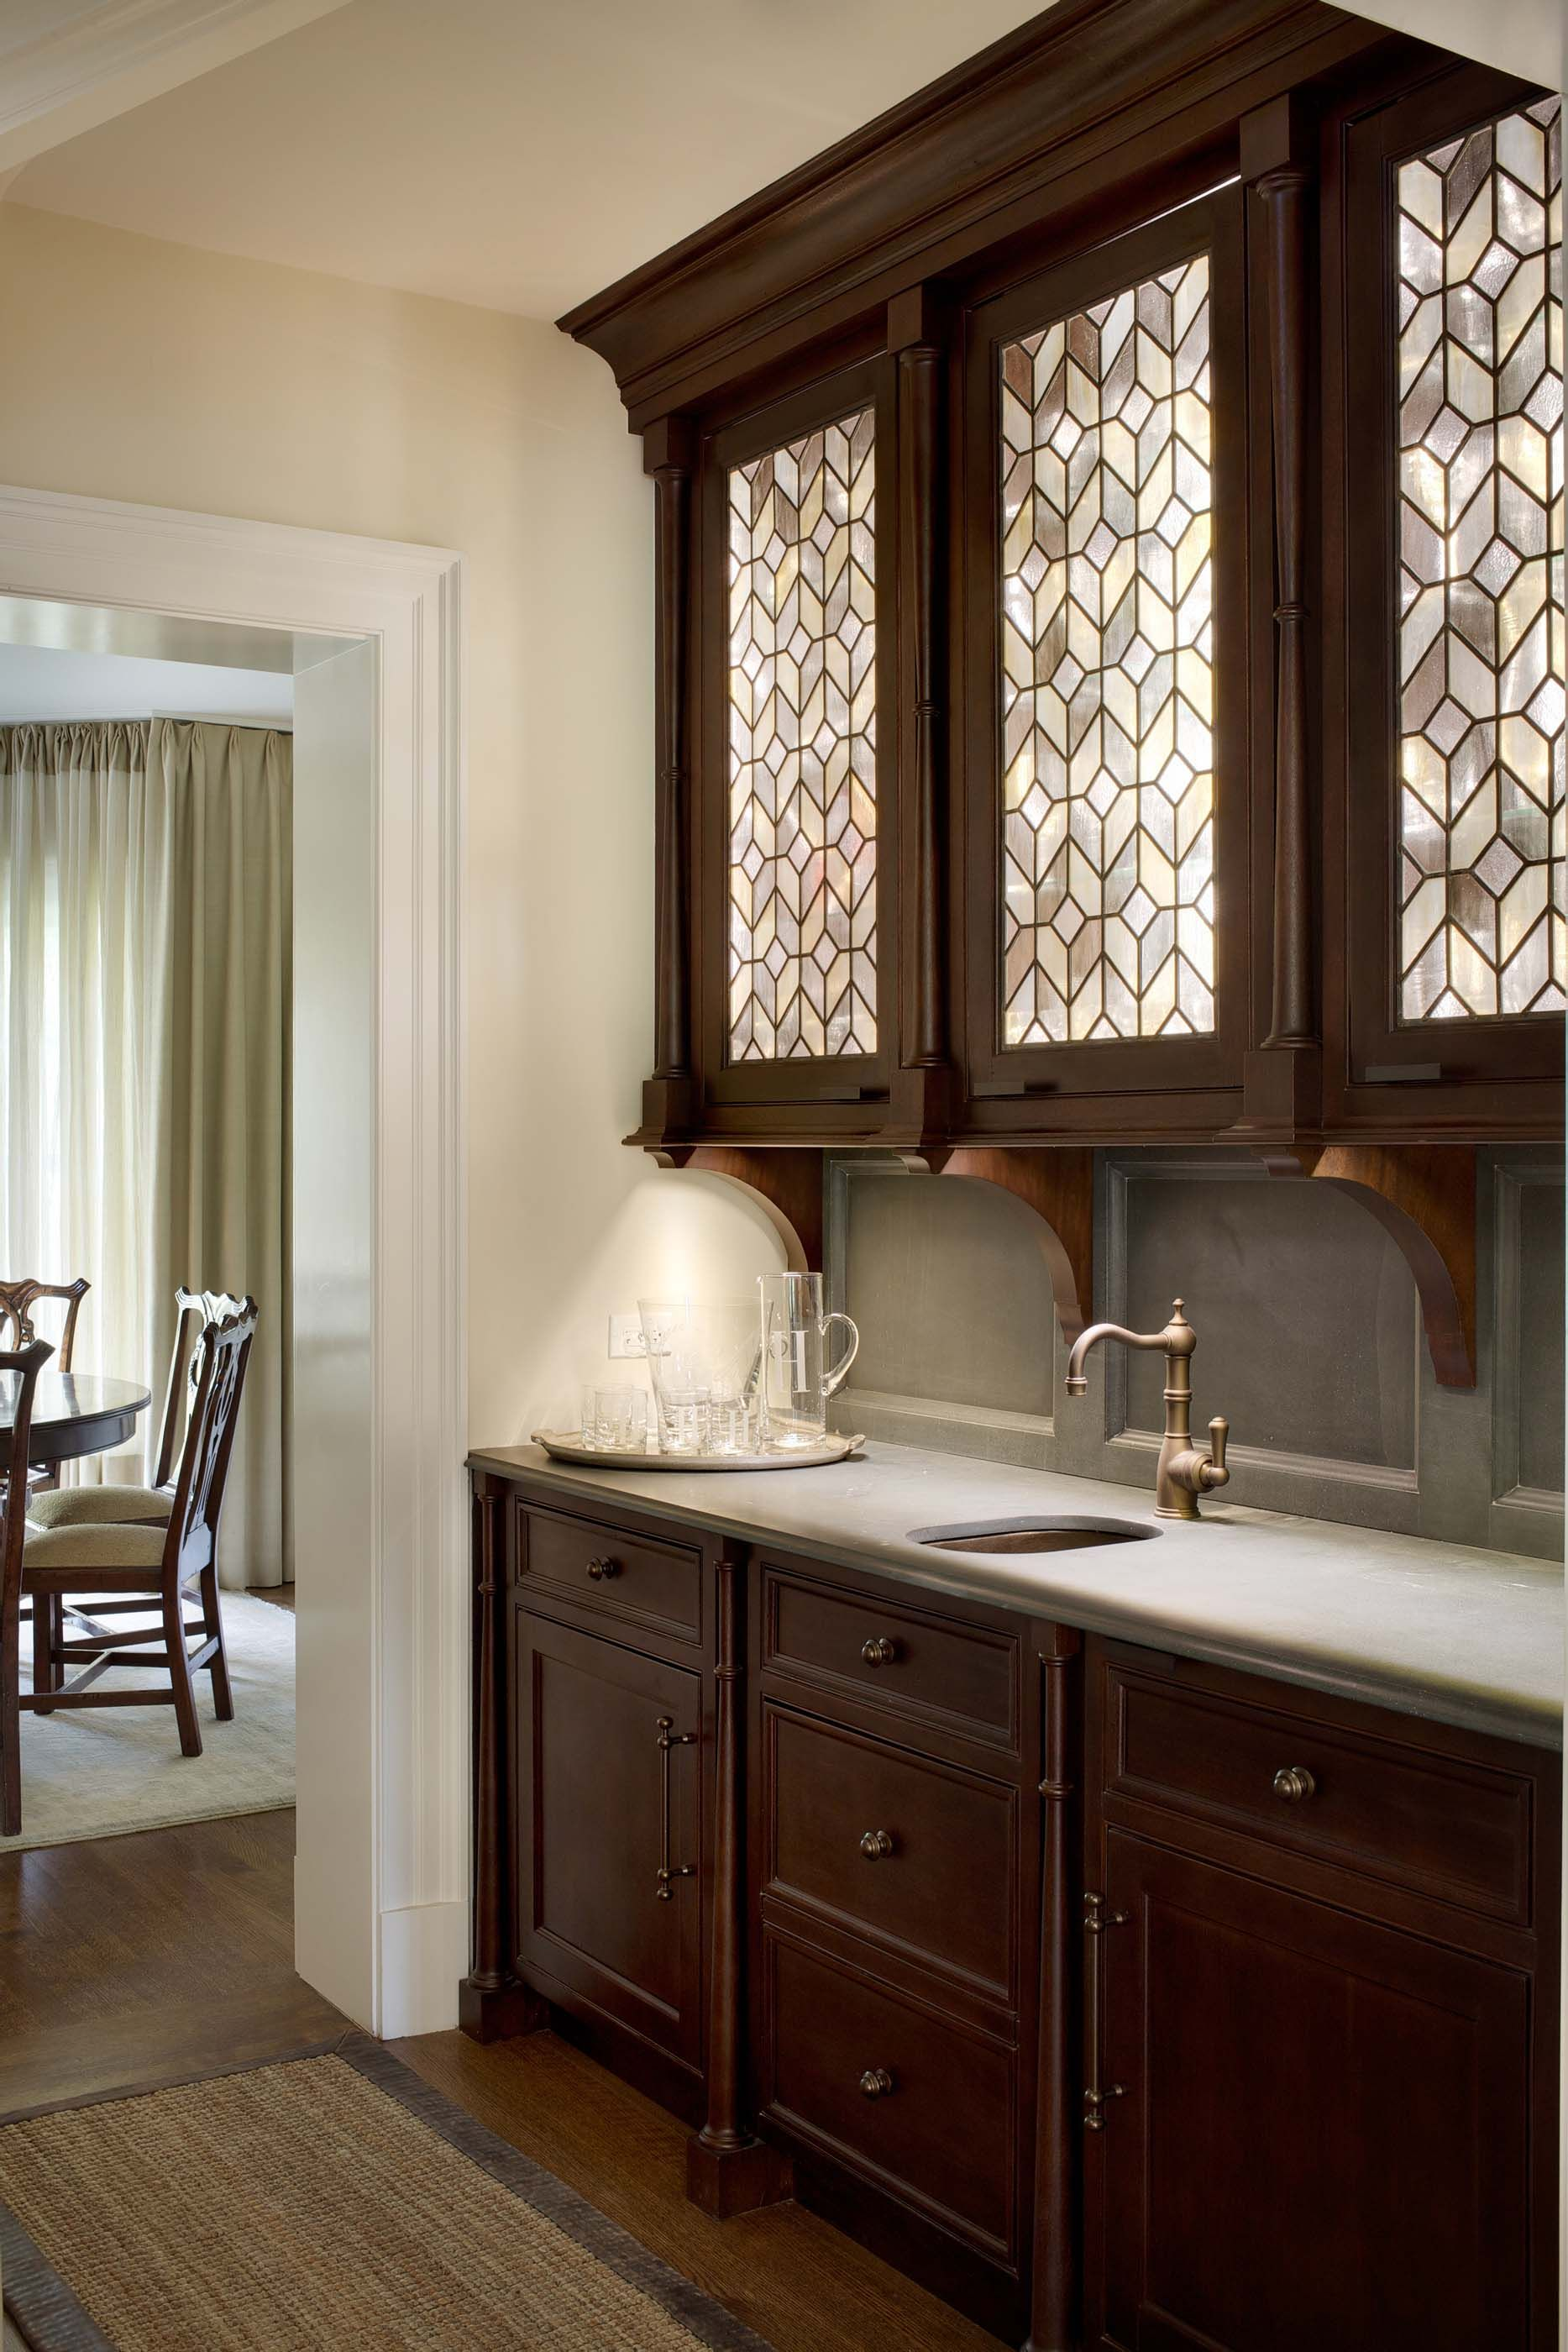 morgante wilson architects used a custom leaded glass for the upper cab glass cabinet doors on kitchen cabinets glass inserts id=80722